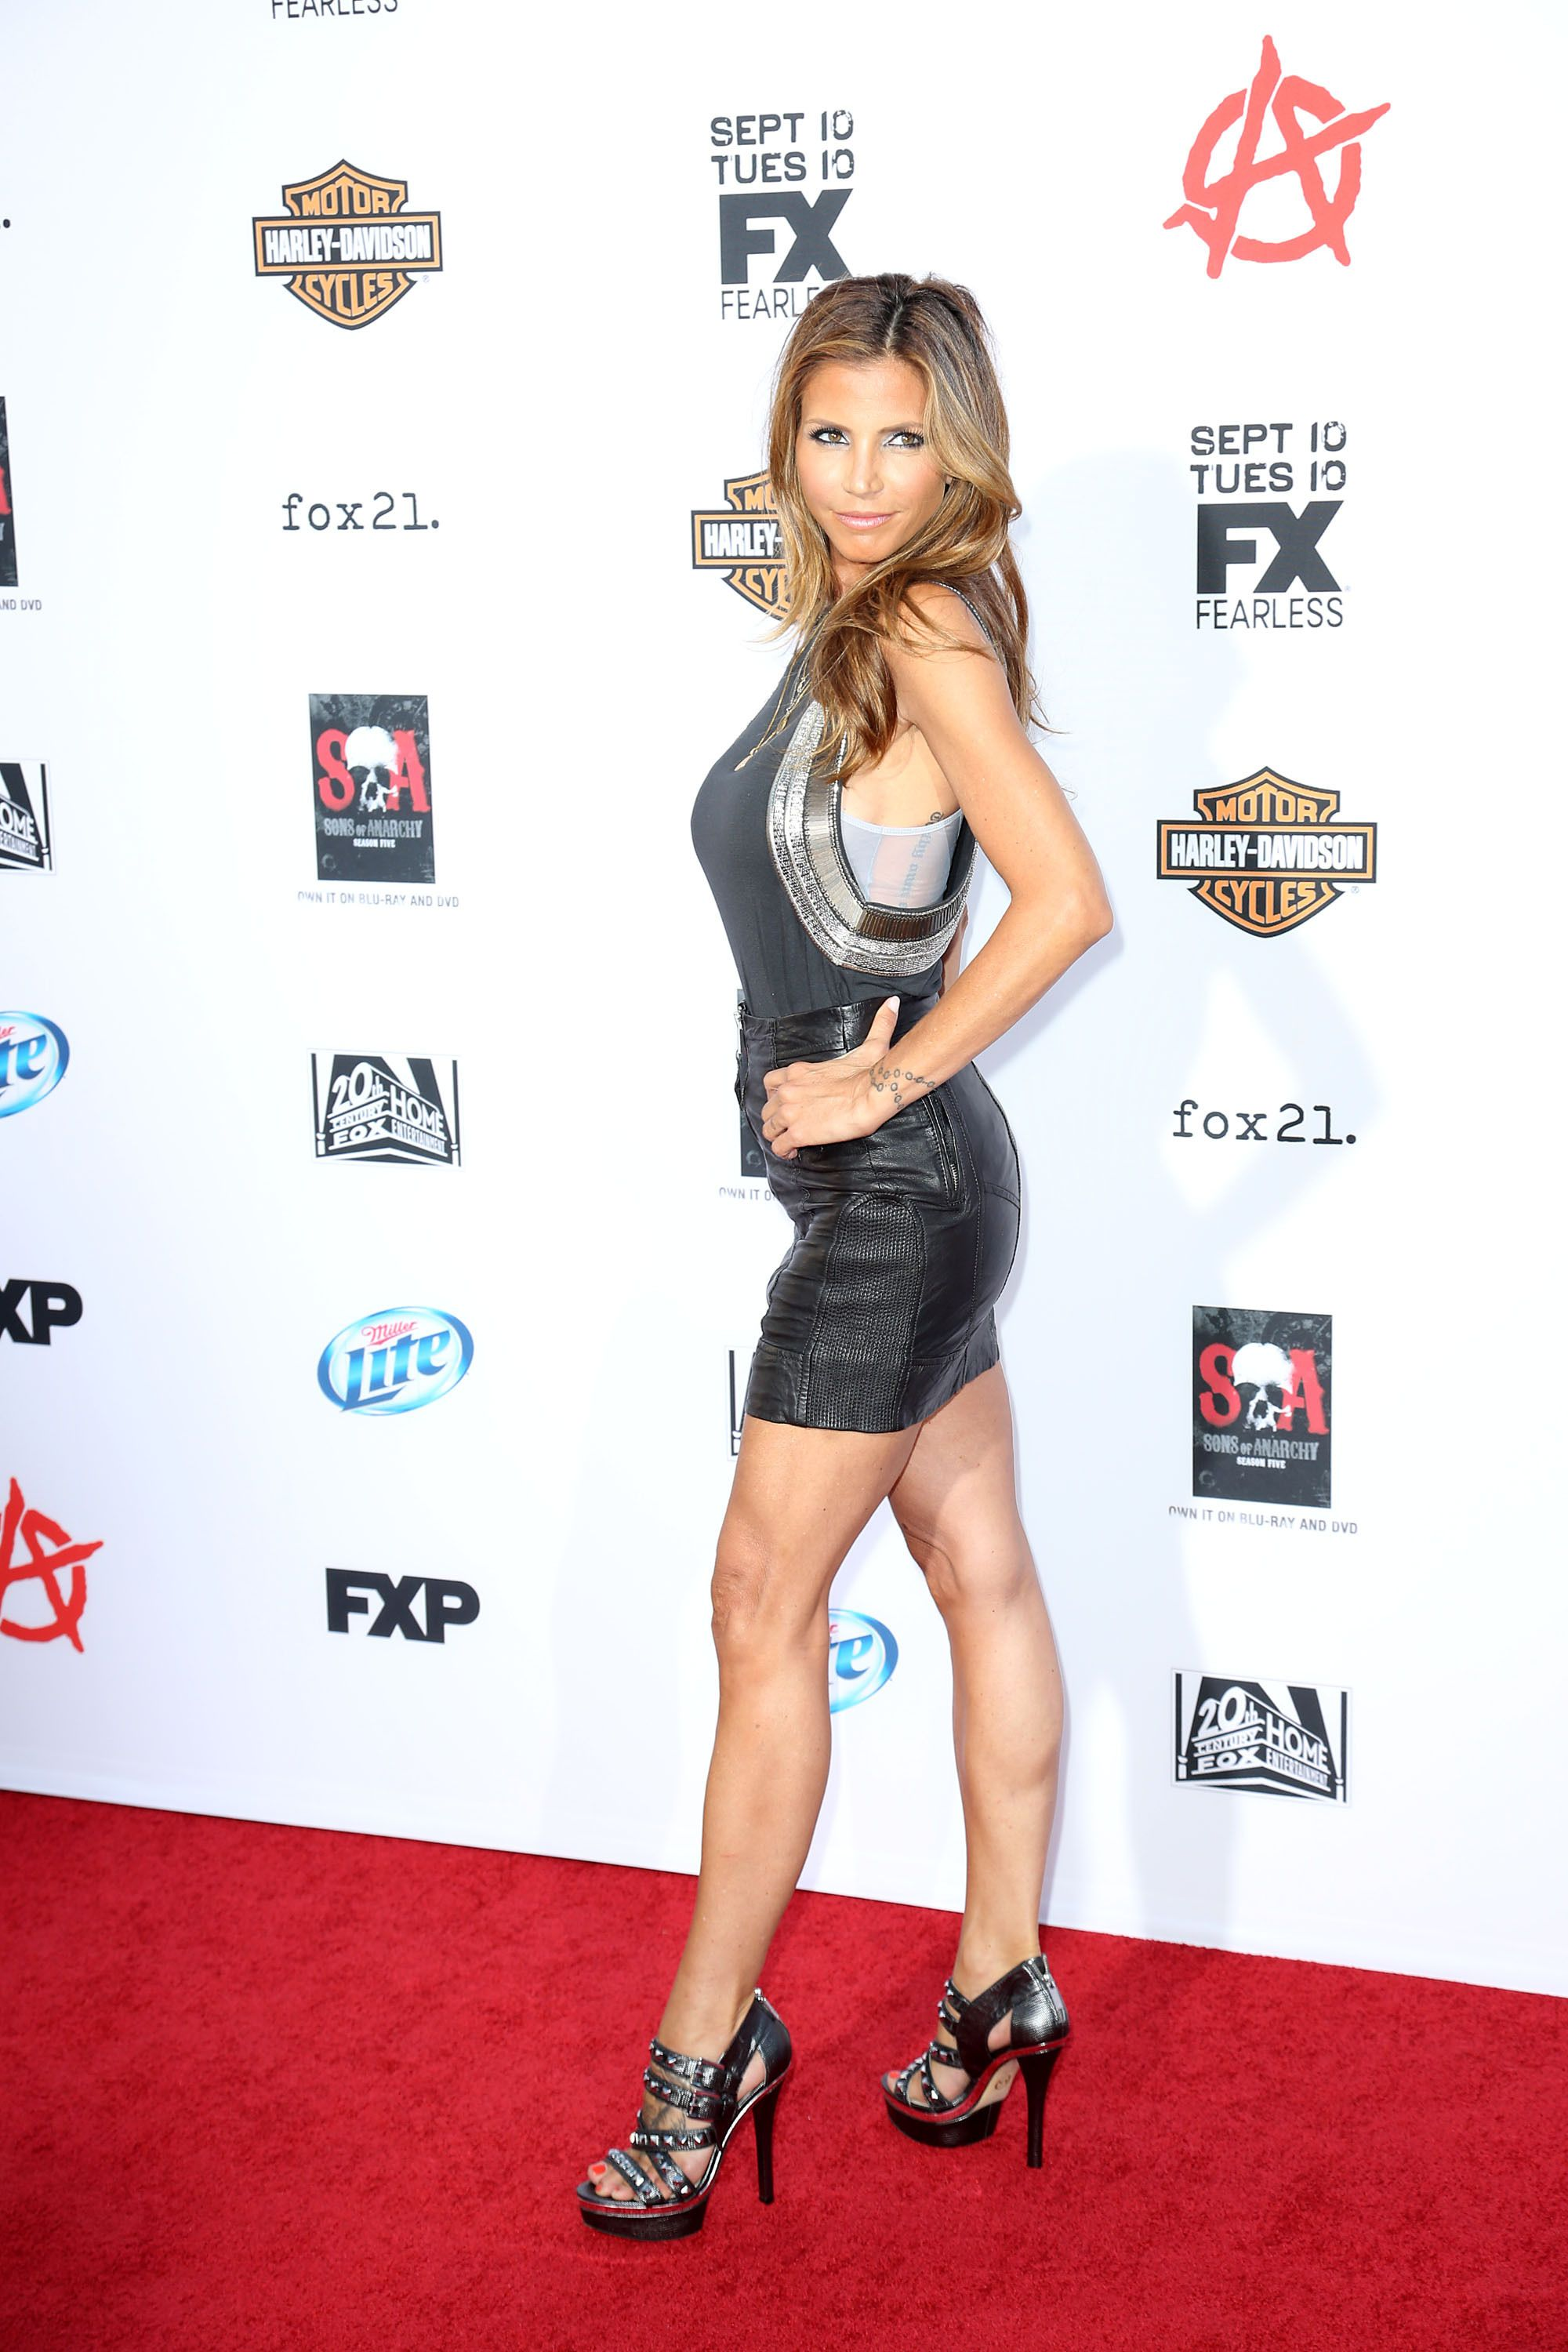 Charisma carpenters feet wikifeet charisma carpenter so charisma carpenters feet wikifeet voltagebd Image collections